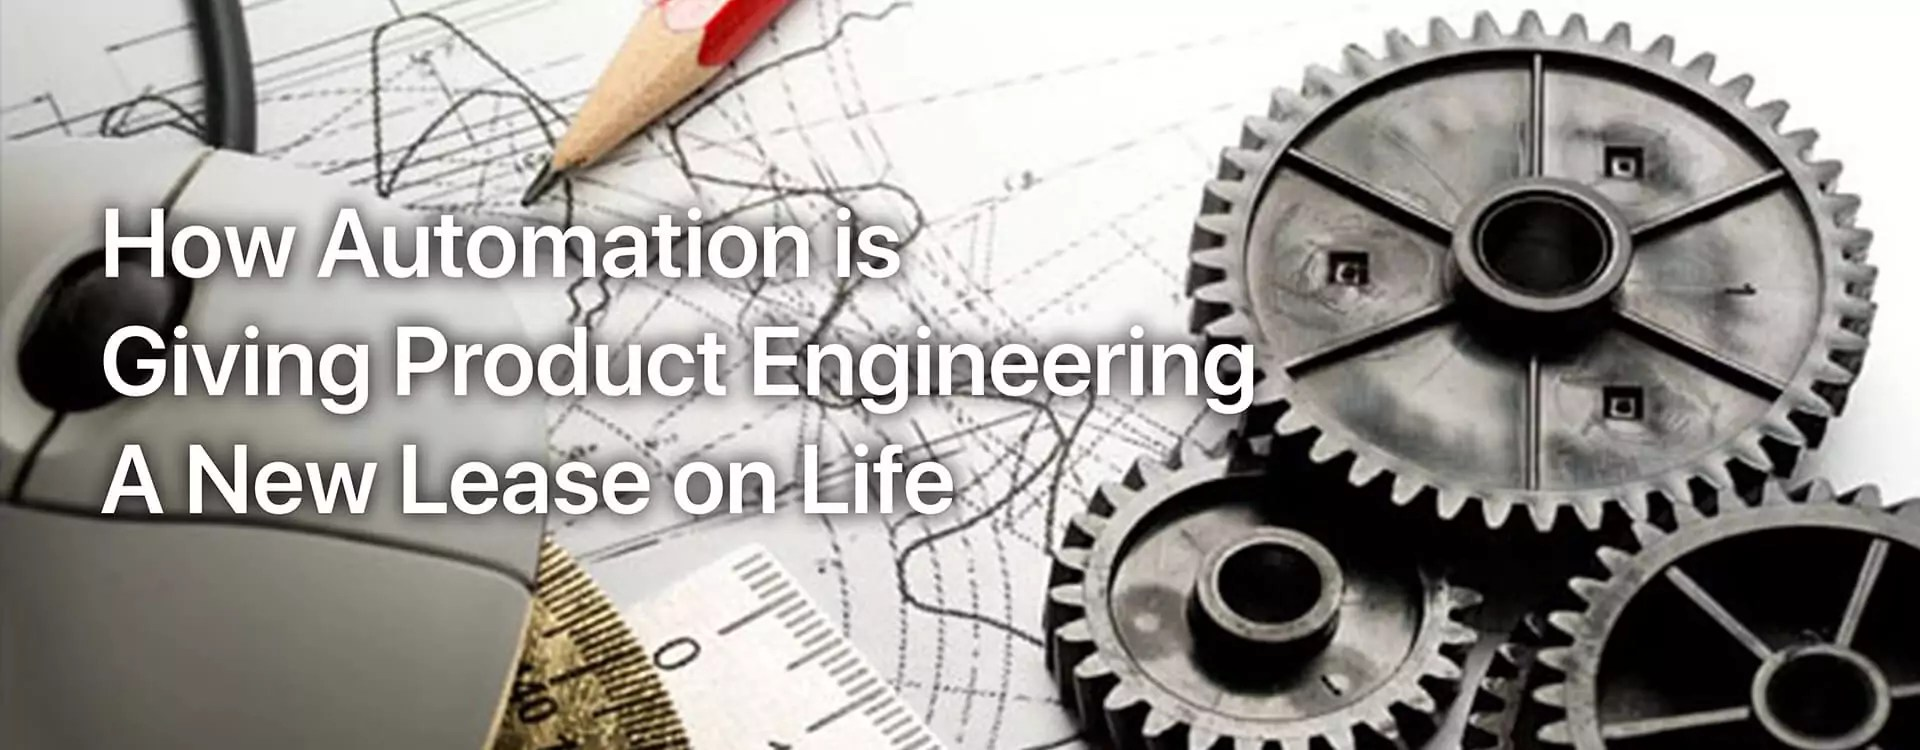 Transformation Of Product Engineering Through Automation